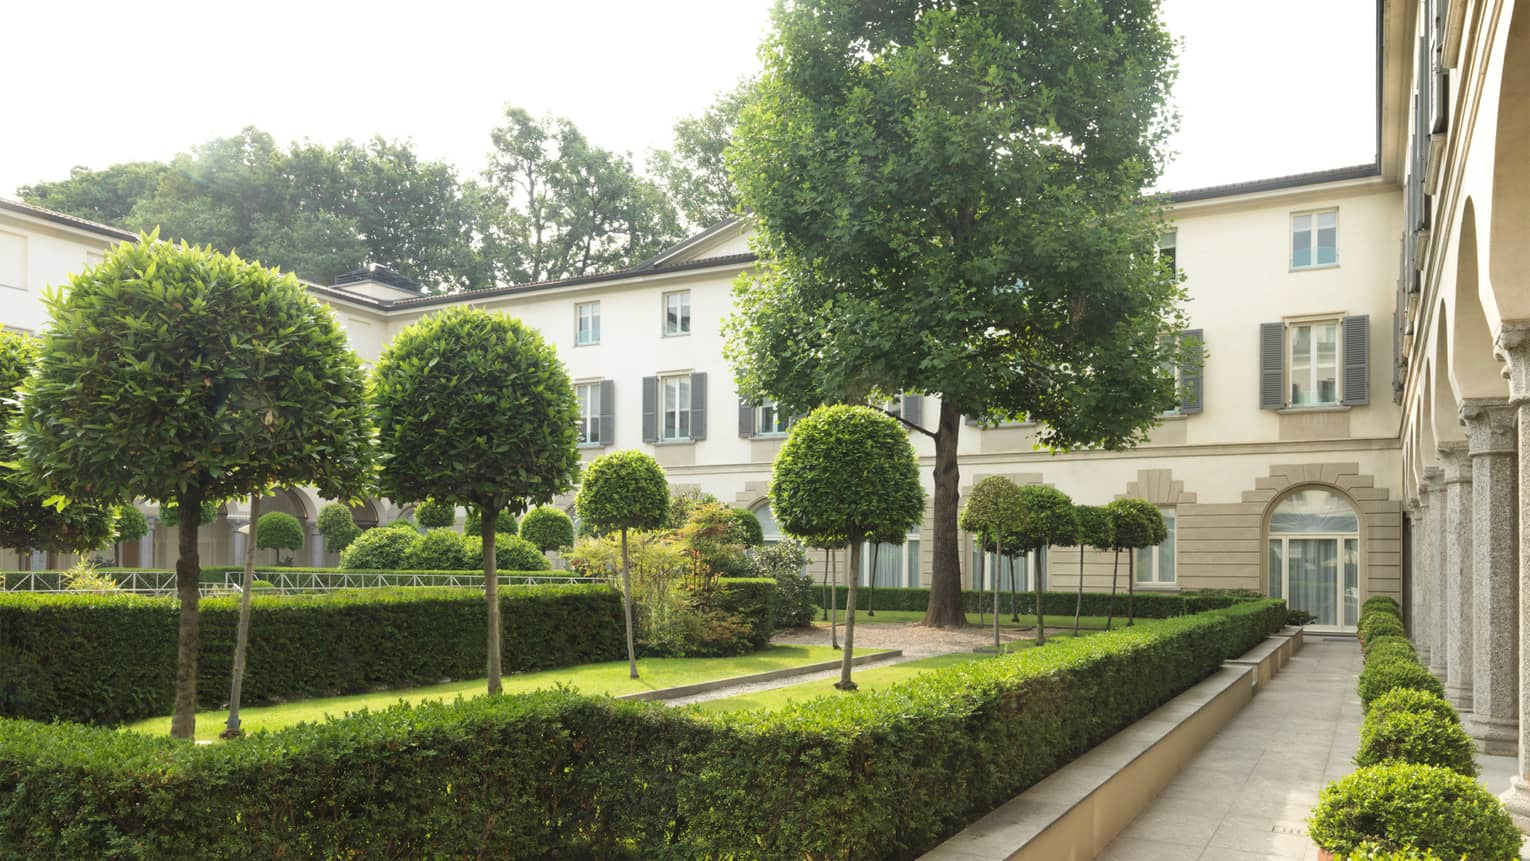 Trees, shrubs along landscaped courtyard by Four Seasons Hotel Milan building